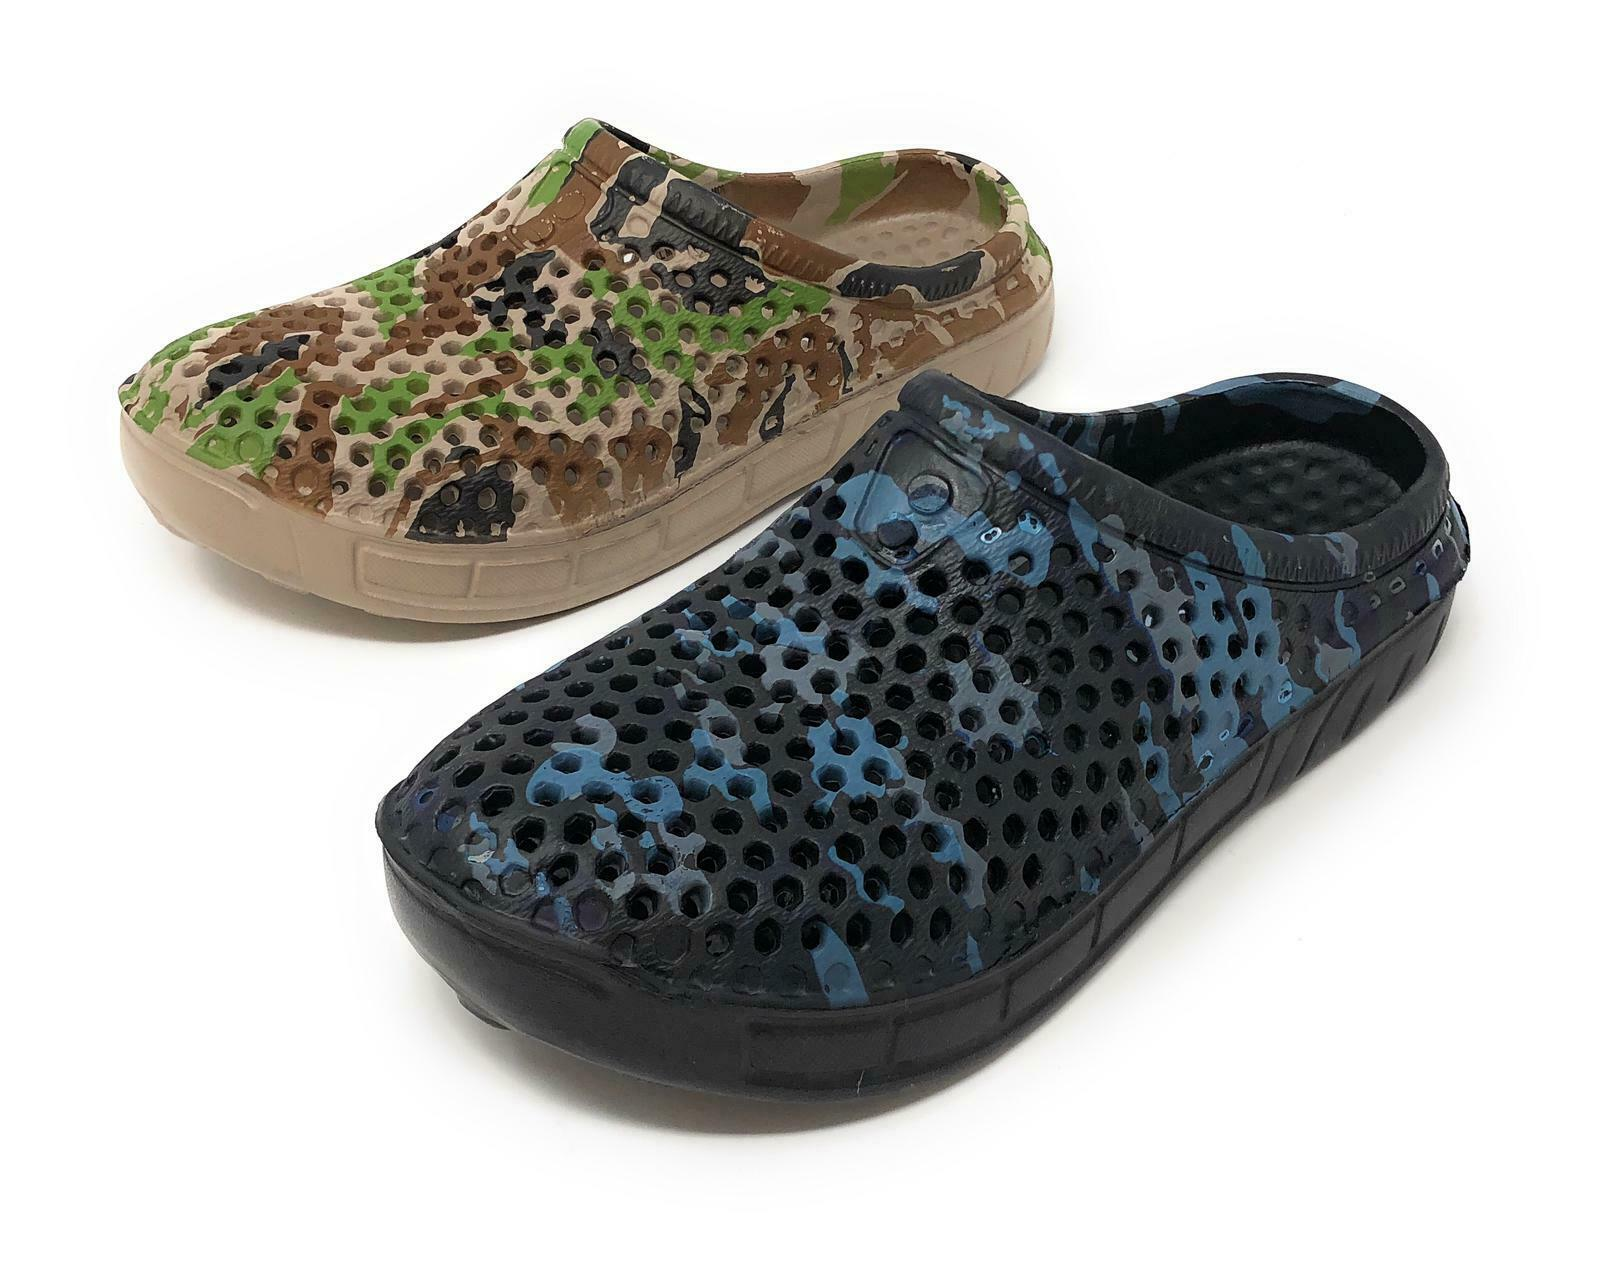 JEFFRICO Clogs for Women Nurse Shoes Garden Shoes Blue Green Camouflage NEW